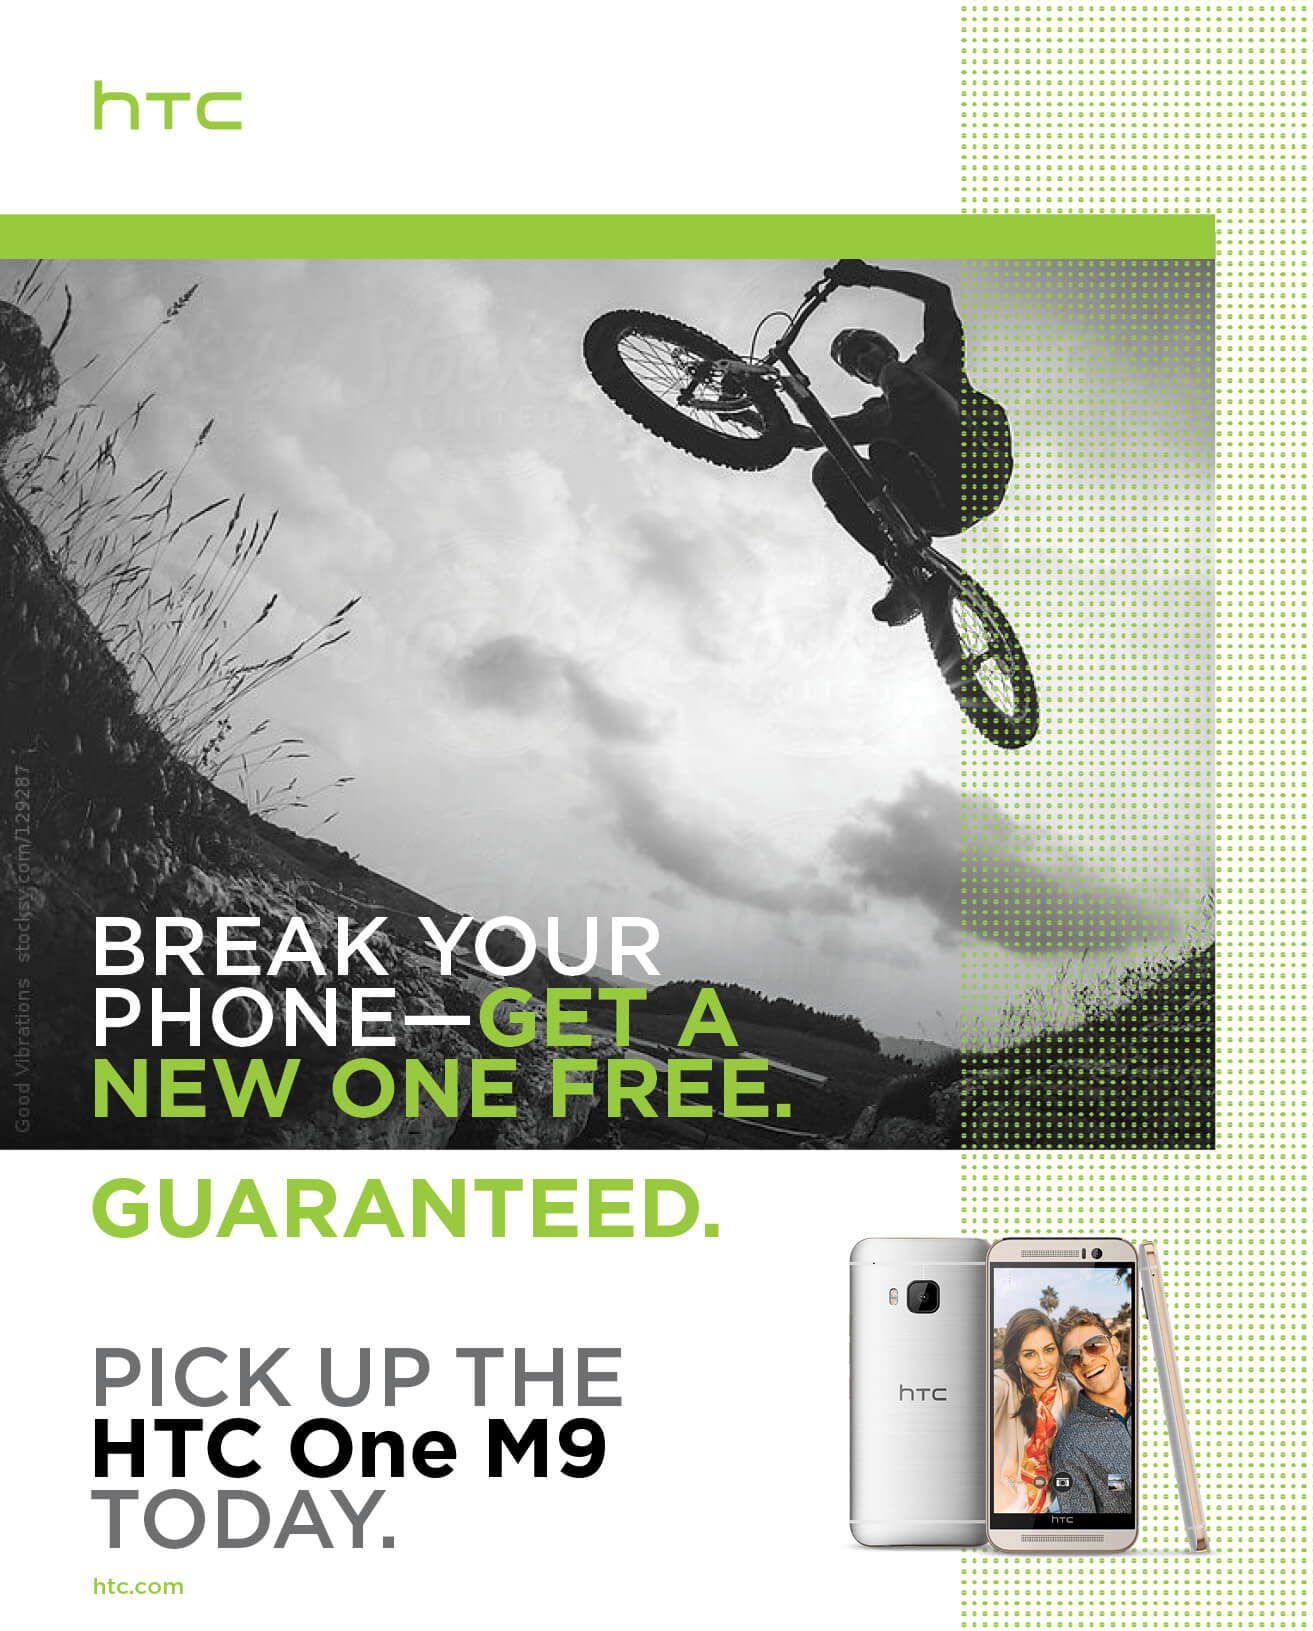 Promo Retail Copy for HTC, implementation example